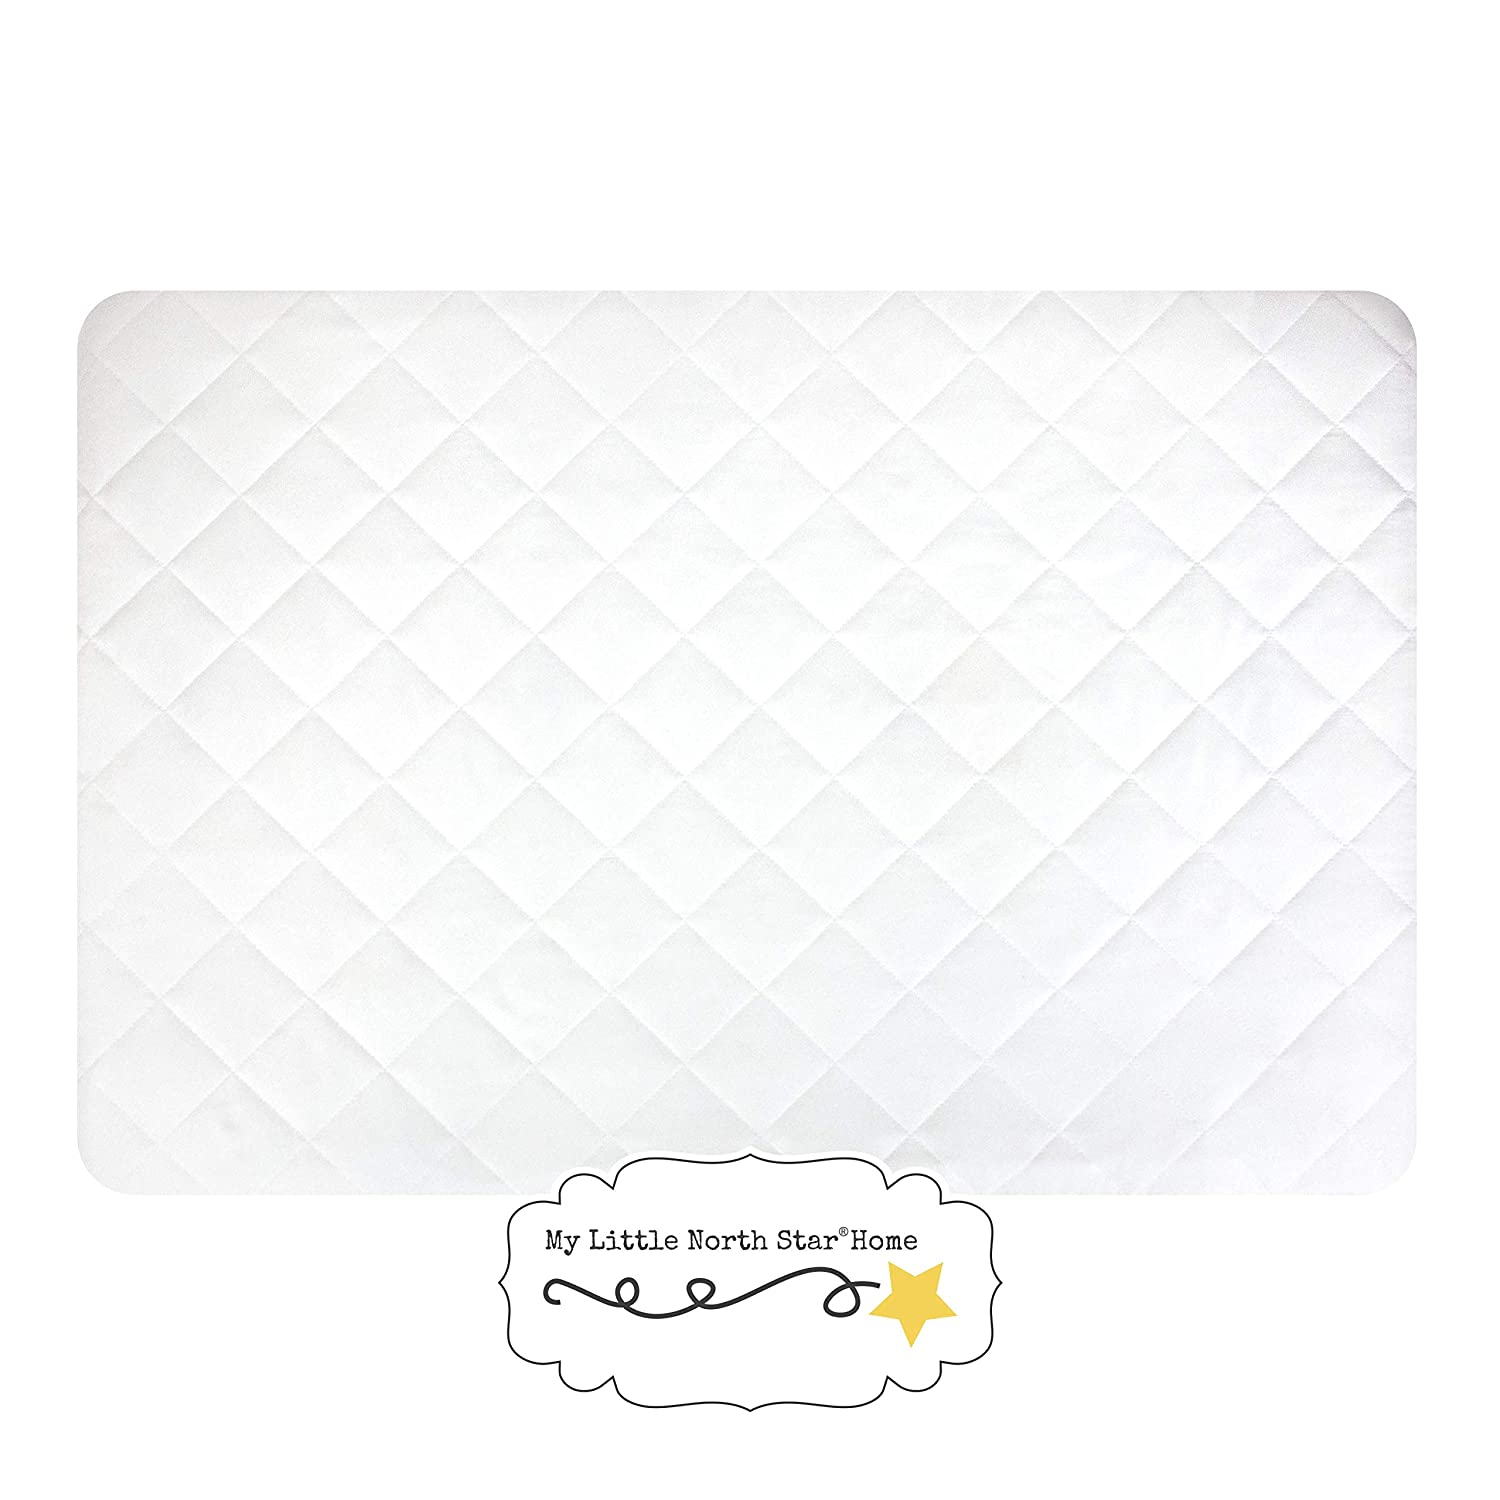 Pack N Play Crib Fitted Mattress Cover - Waterproof, Dryer Safe, Quilted and Soft, Hypoallergenic Mattress Protector - Fits Baby Mini Crib Portable Crib and Play Yard mattresses